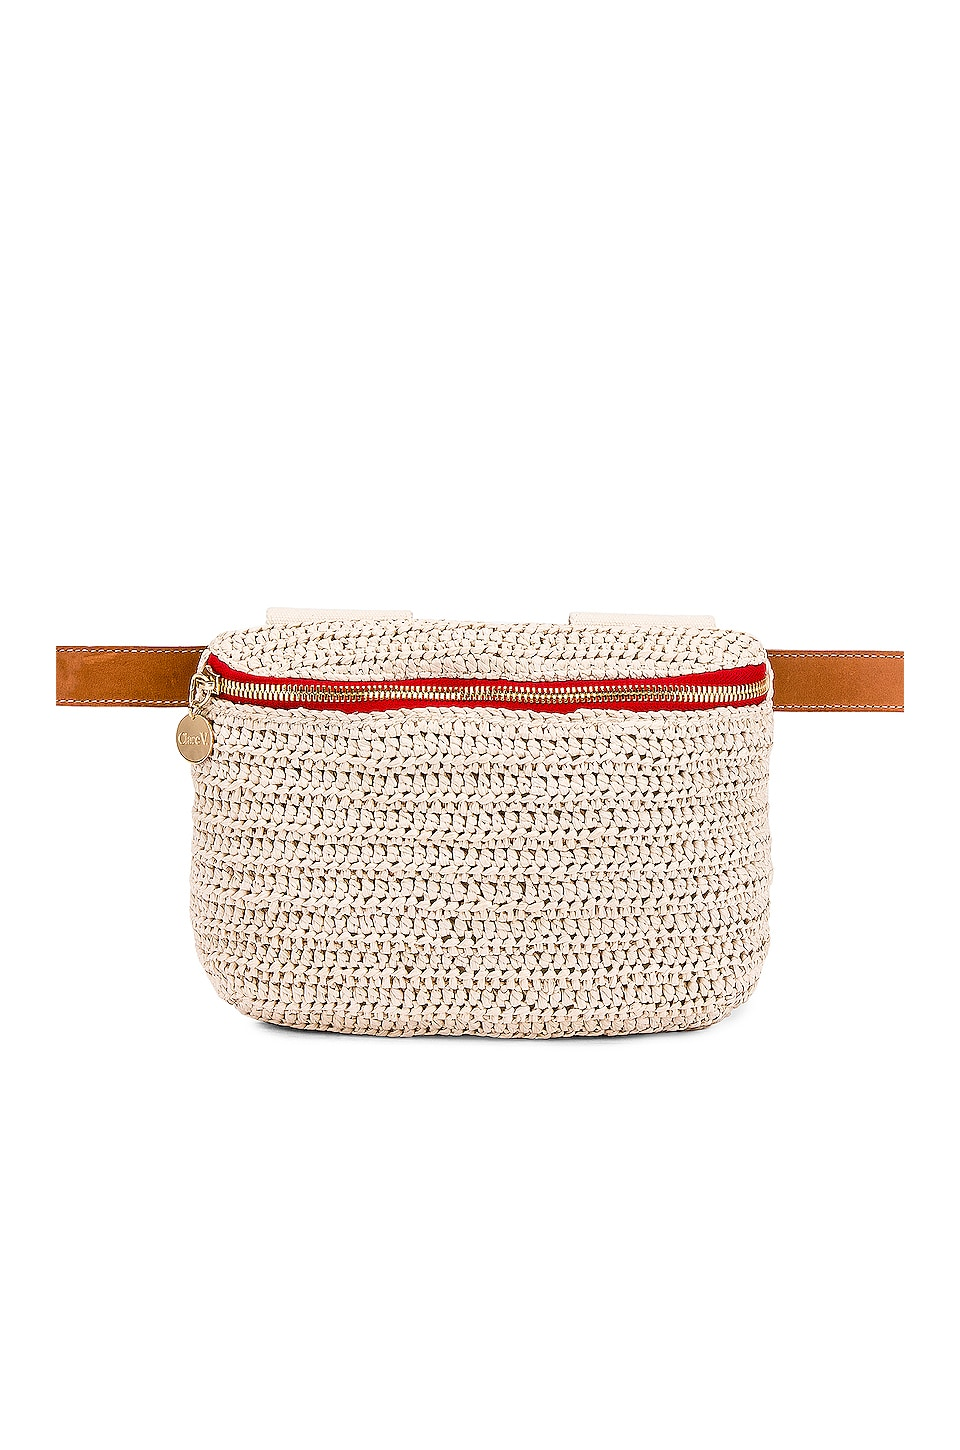 Clare V. Fanny Pack in Cream